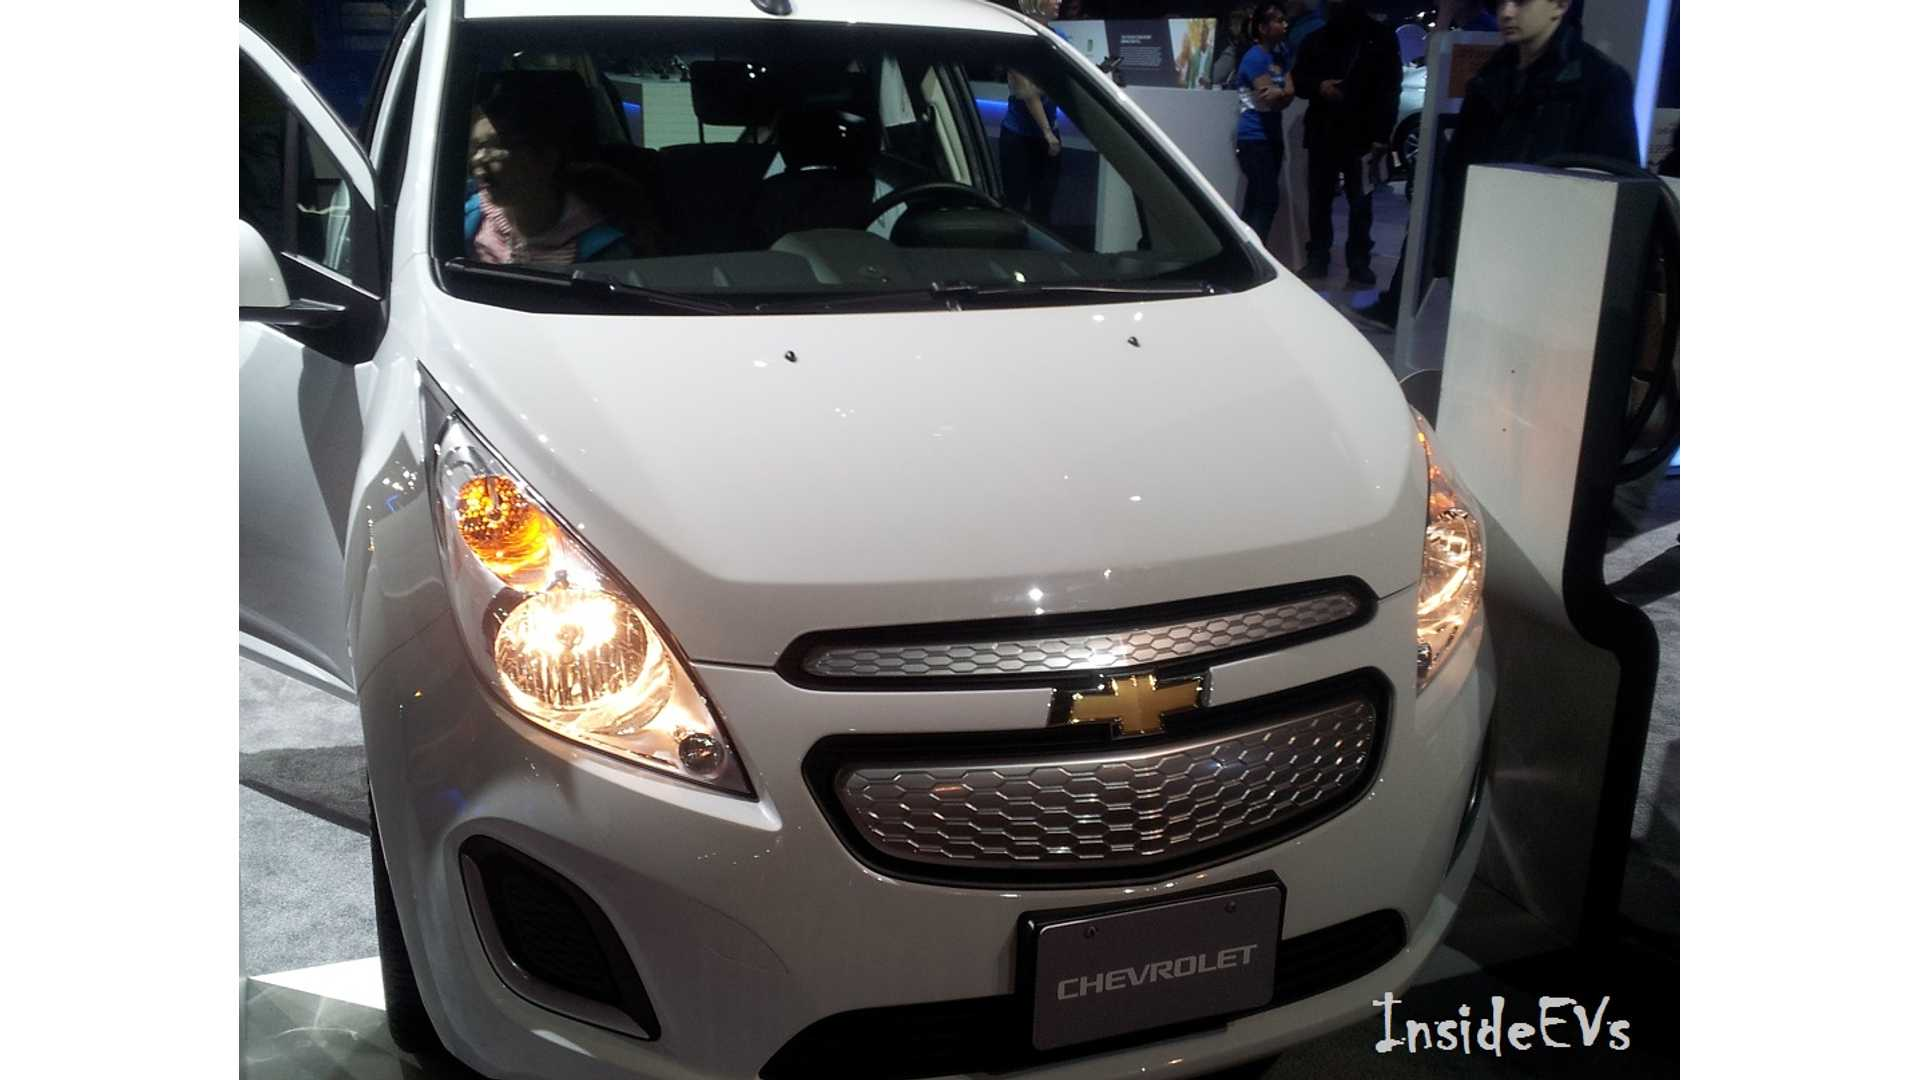 2016 Chevrolet Spark Ev Production Ends In August Review